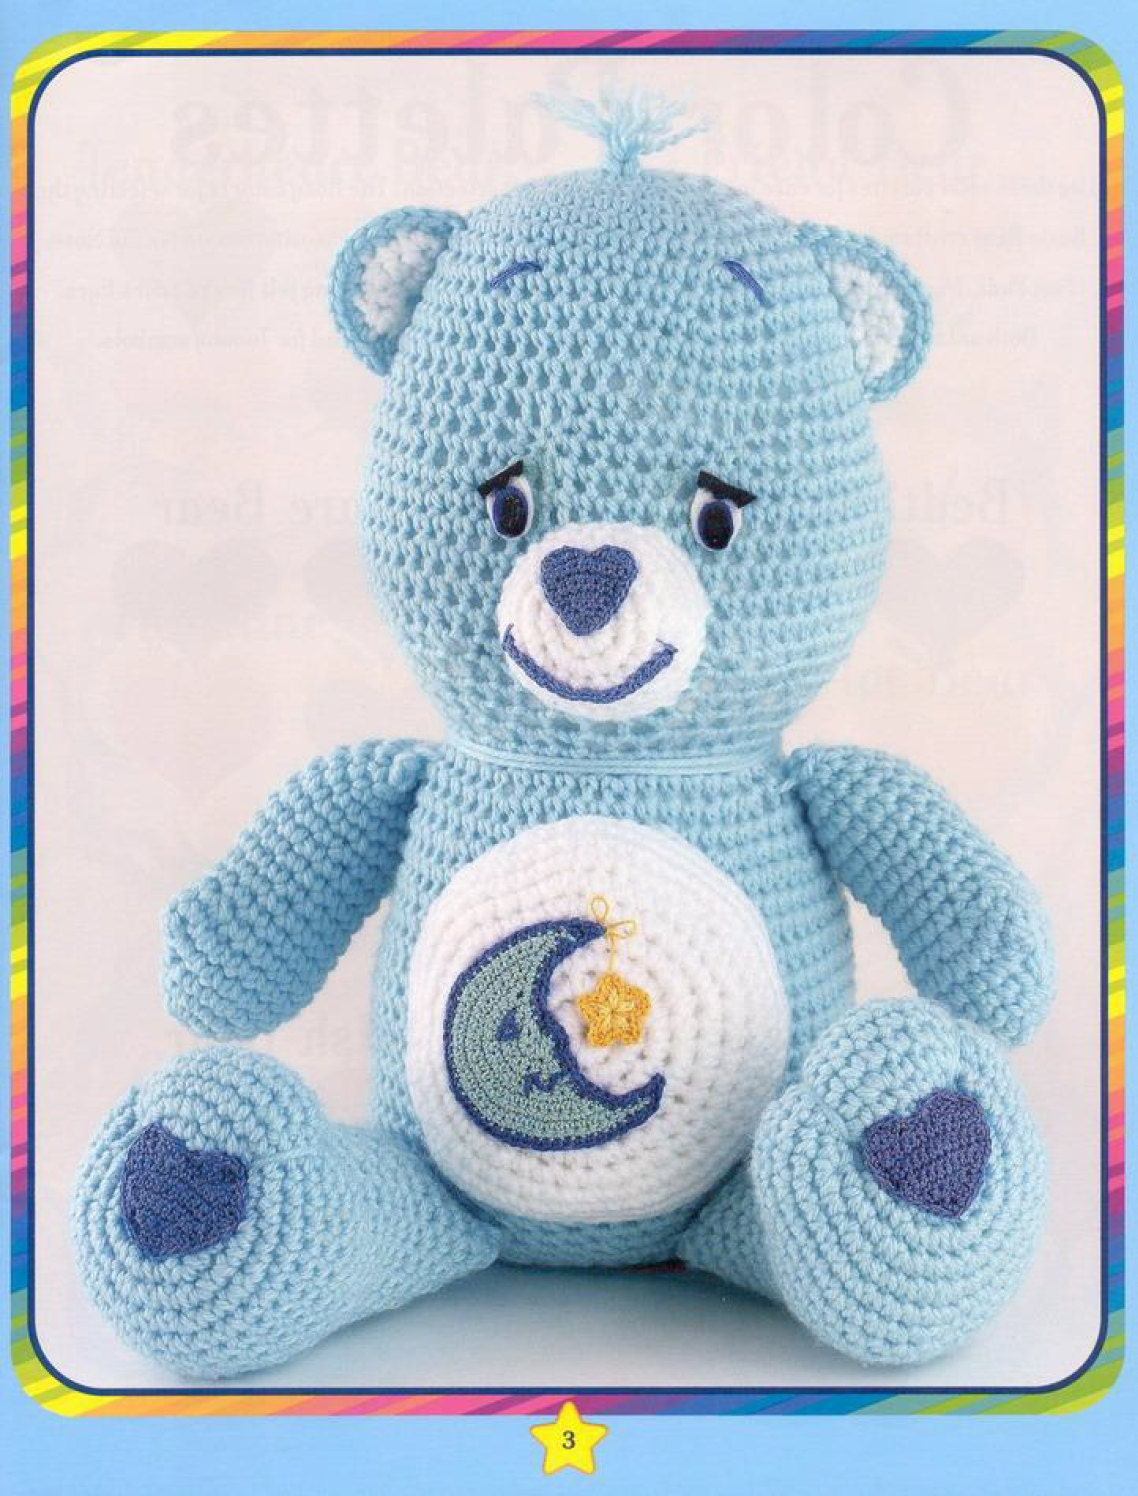 Care bear crochet pattern book soft toy amigurumi soft toy this is a digital file bankloansurffo Choice Image